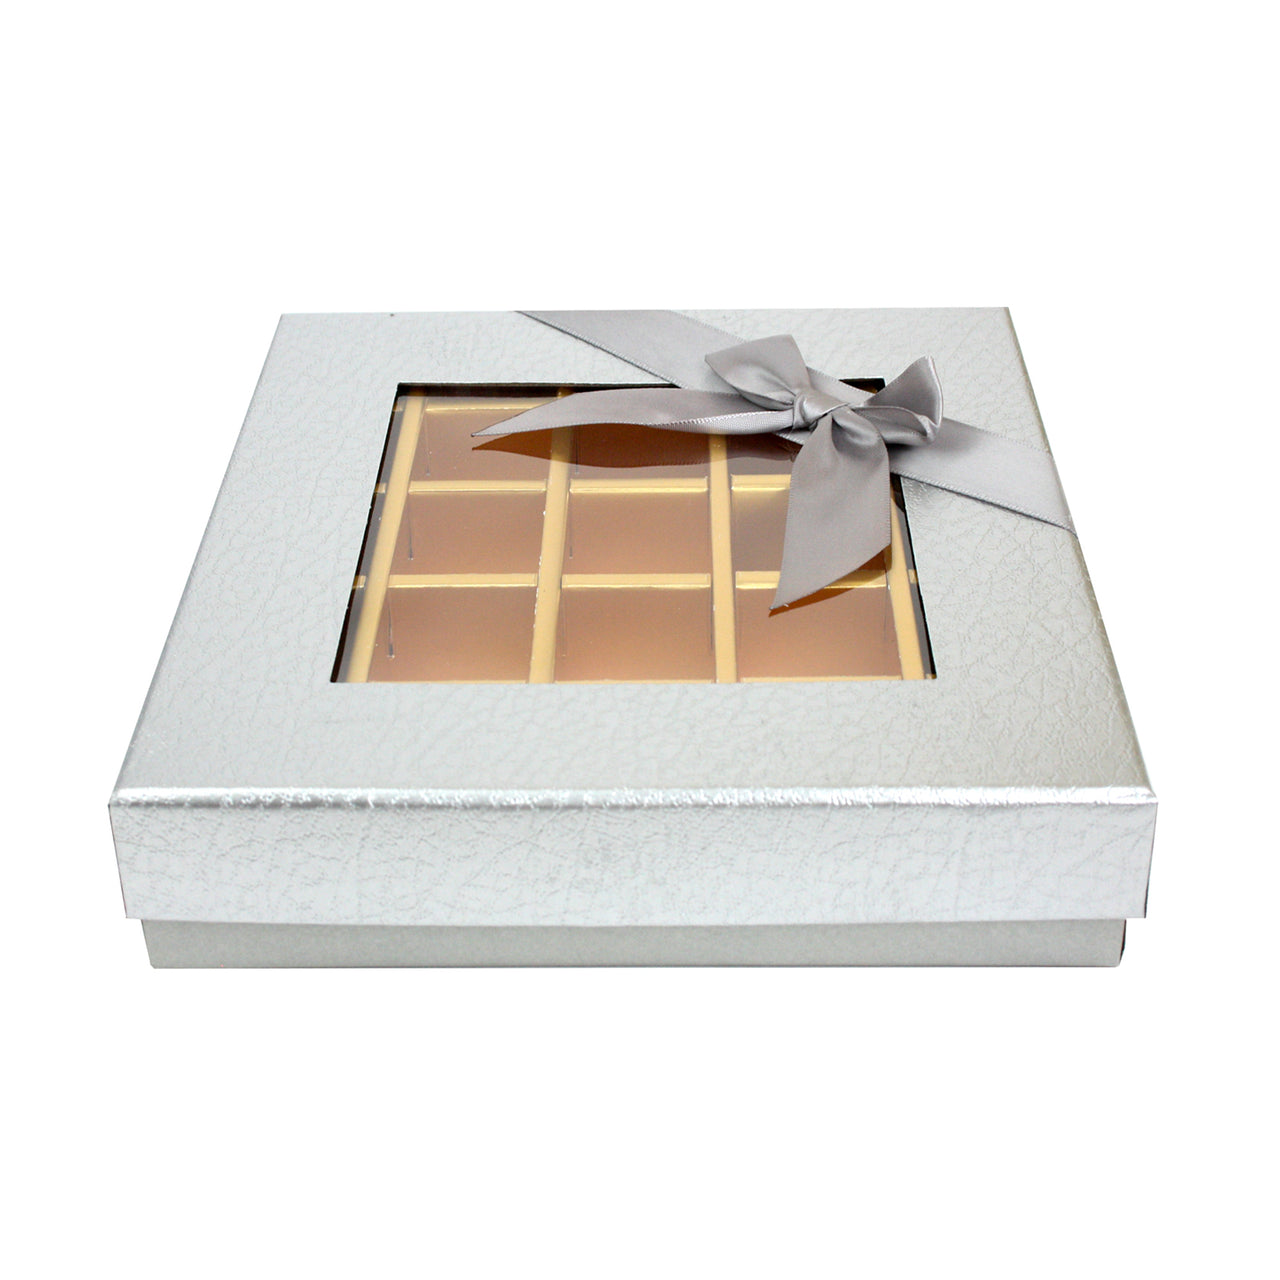 25 Compartment Metallic Gift Box - Silver Pack of 3